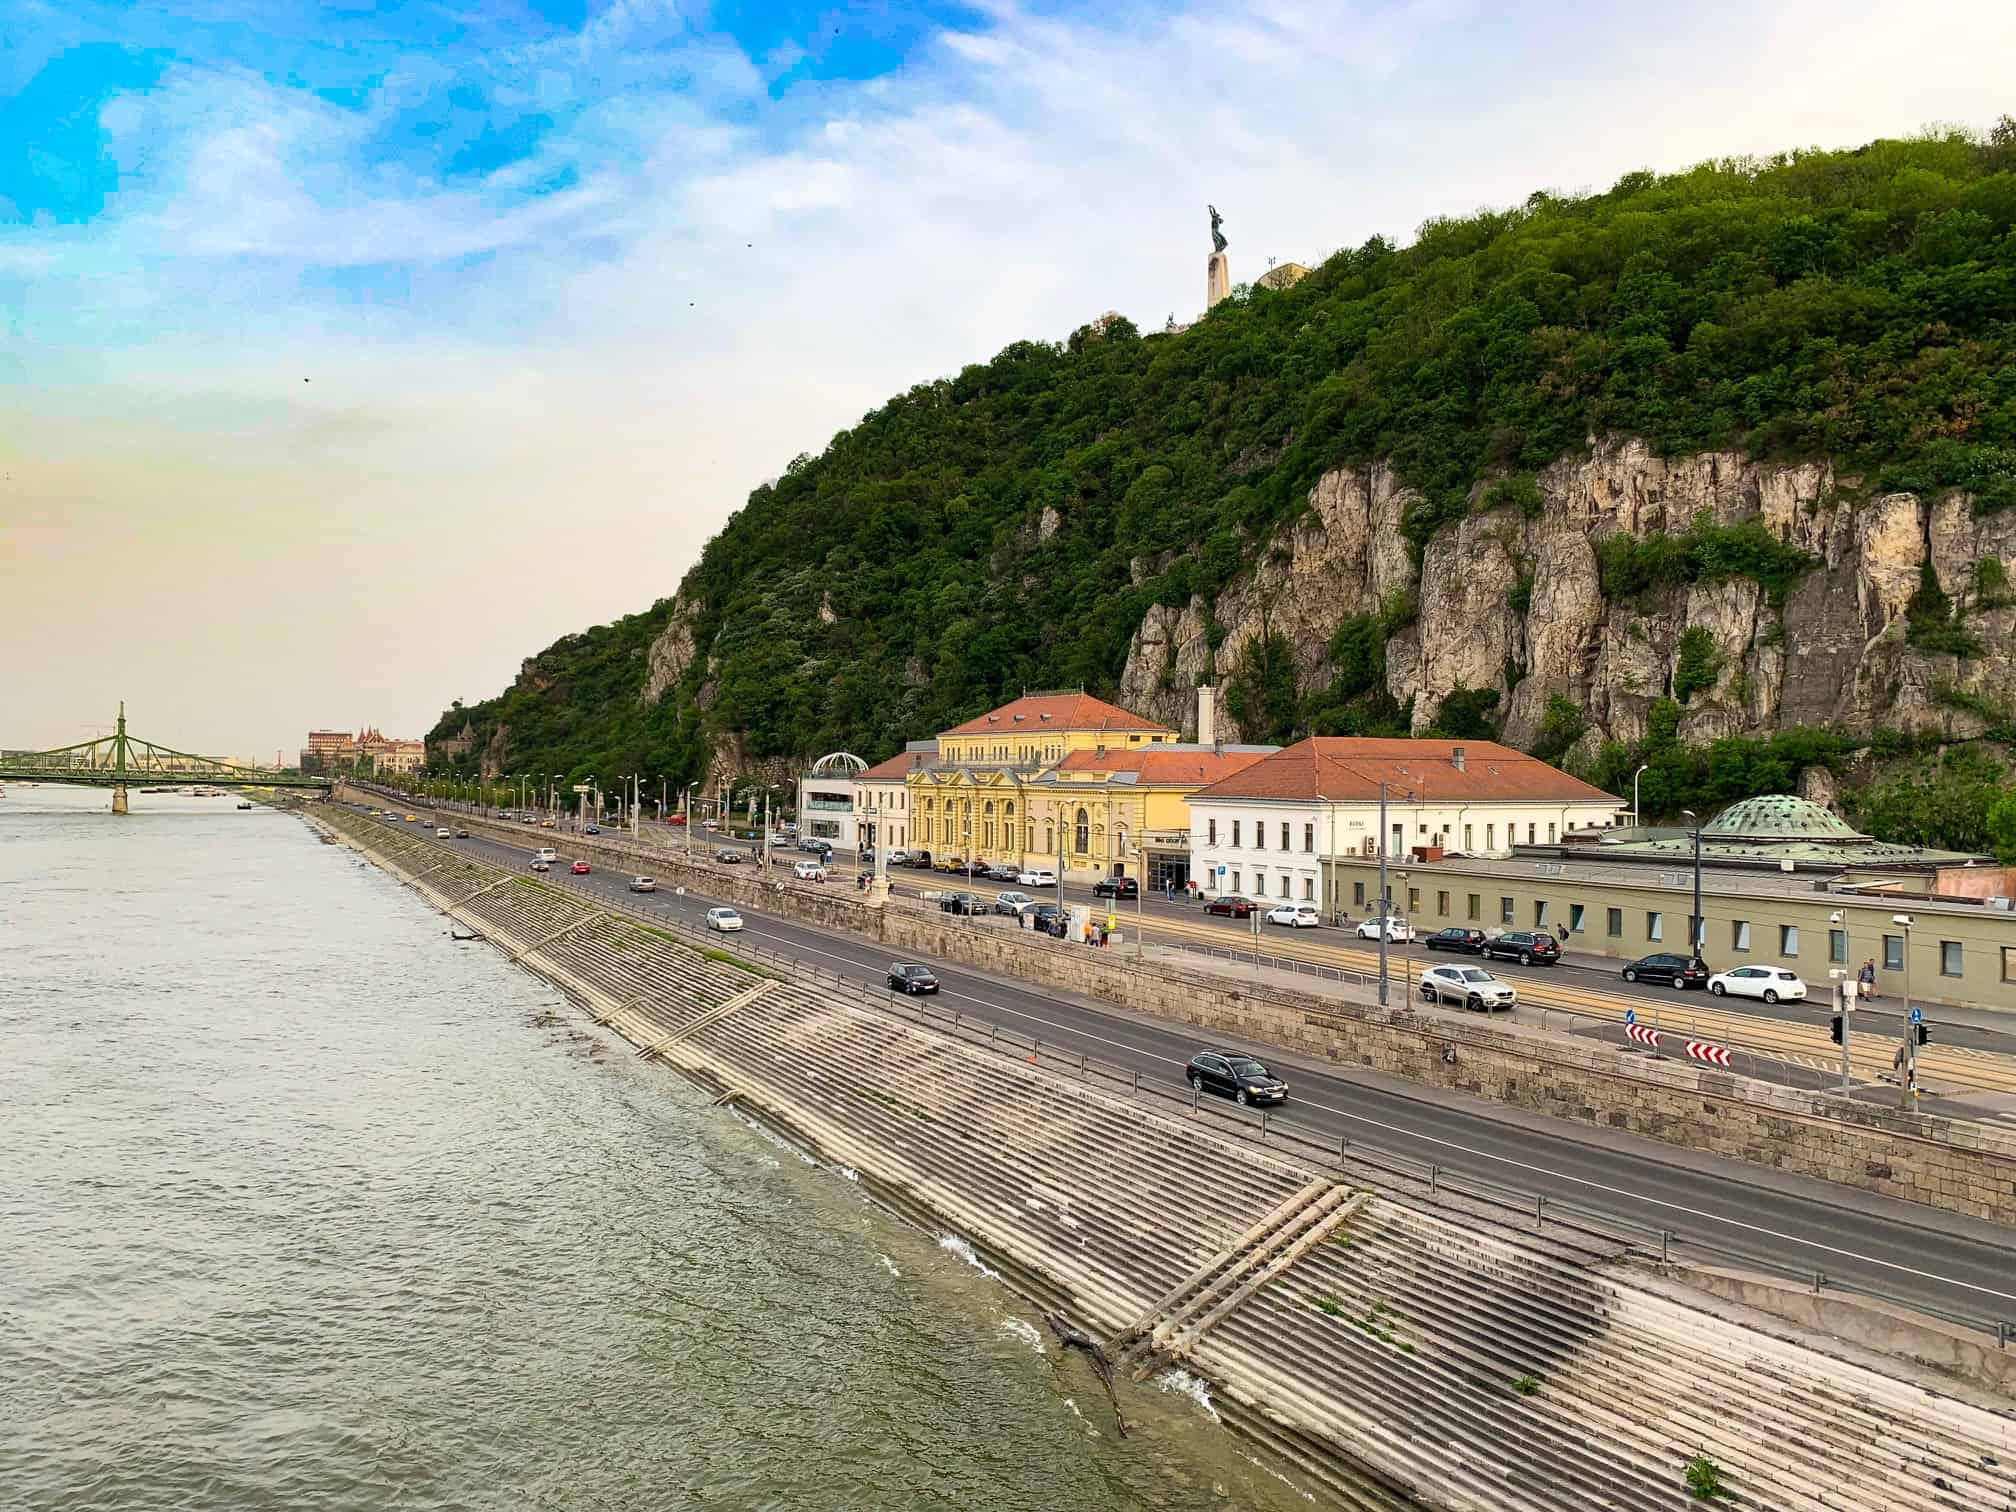 This is what the exterior of Rudas Baths Budapest looks like along the Danube